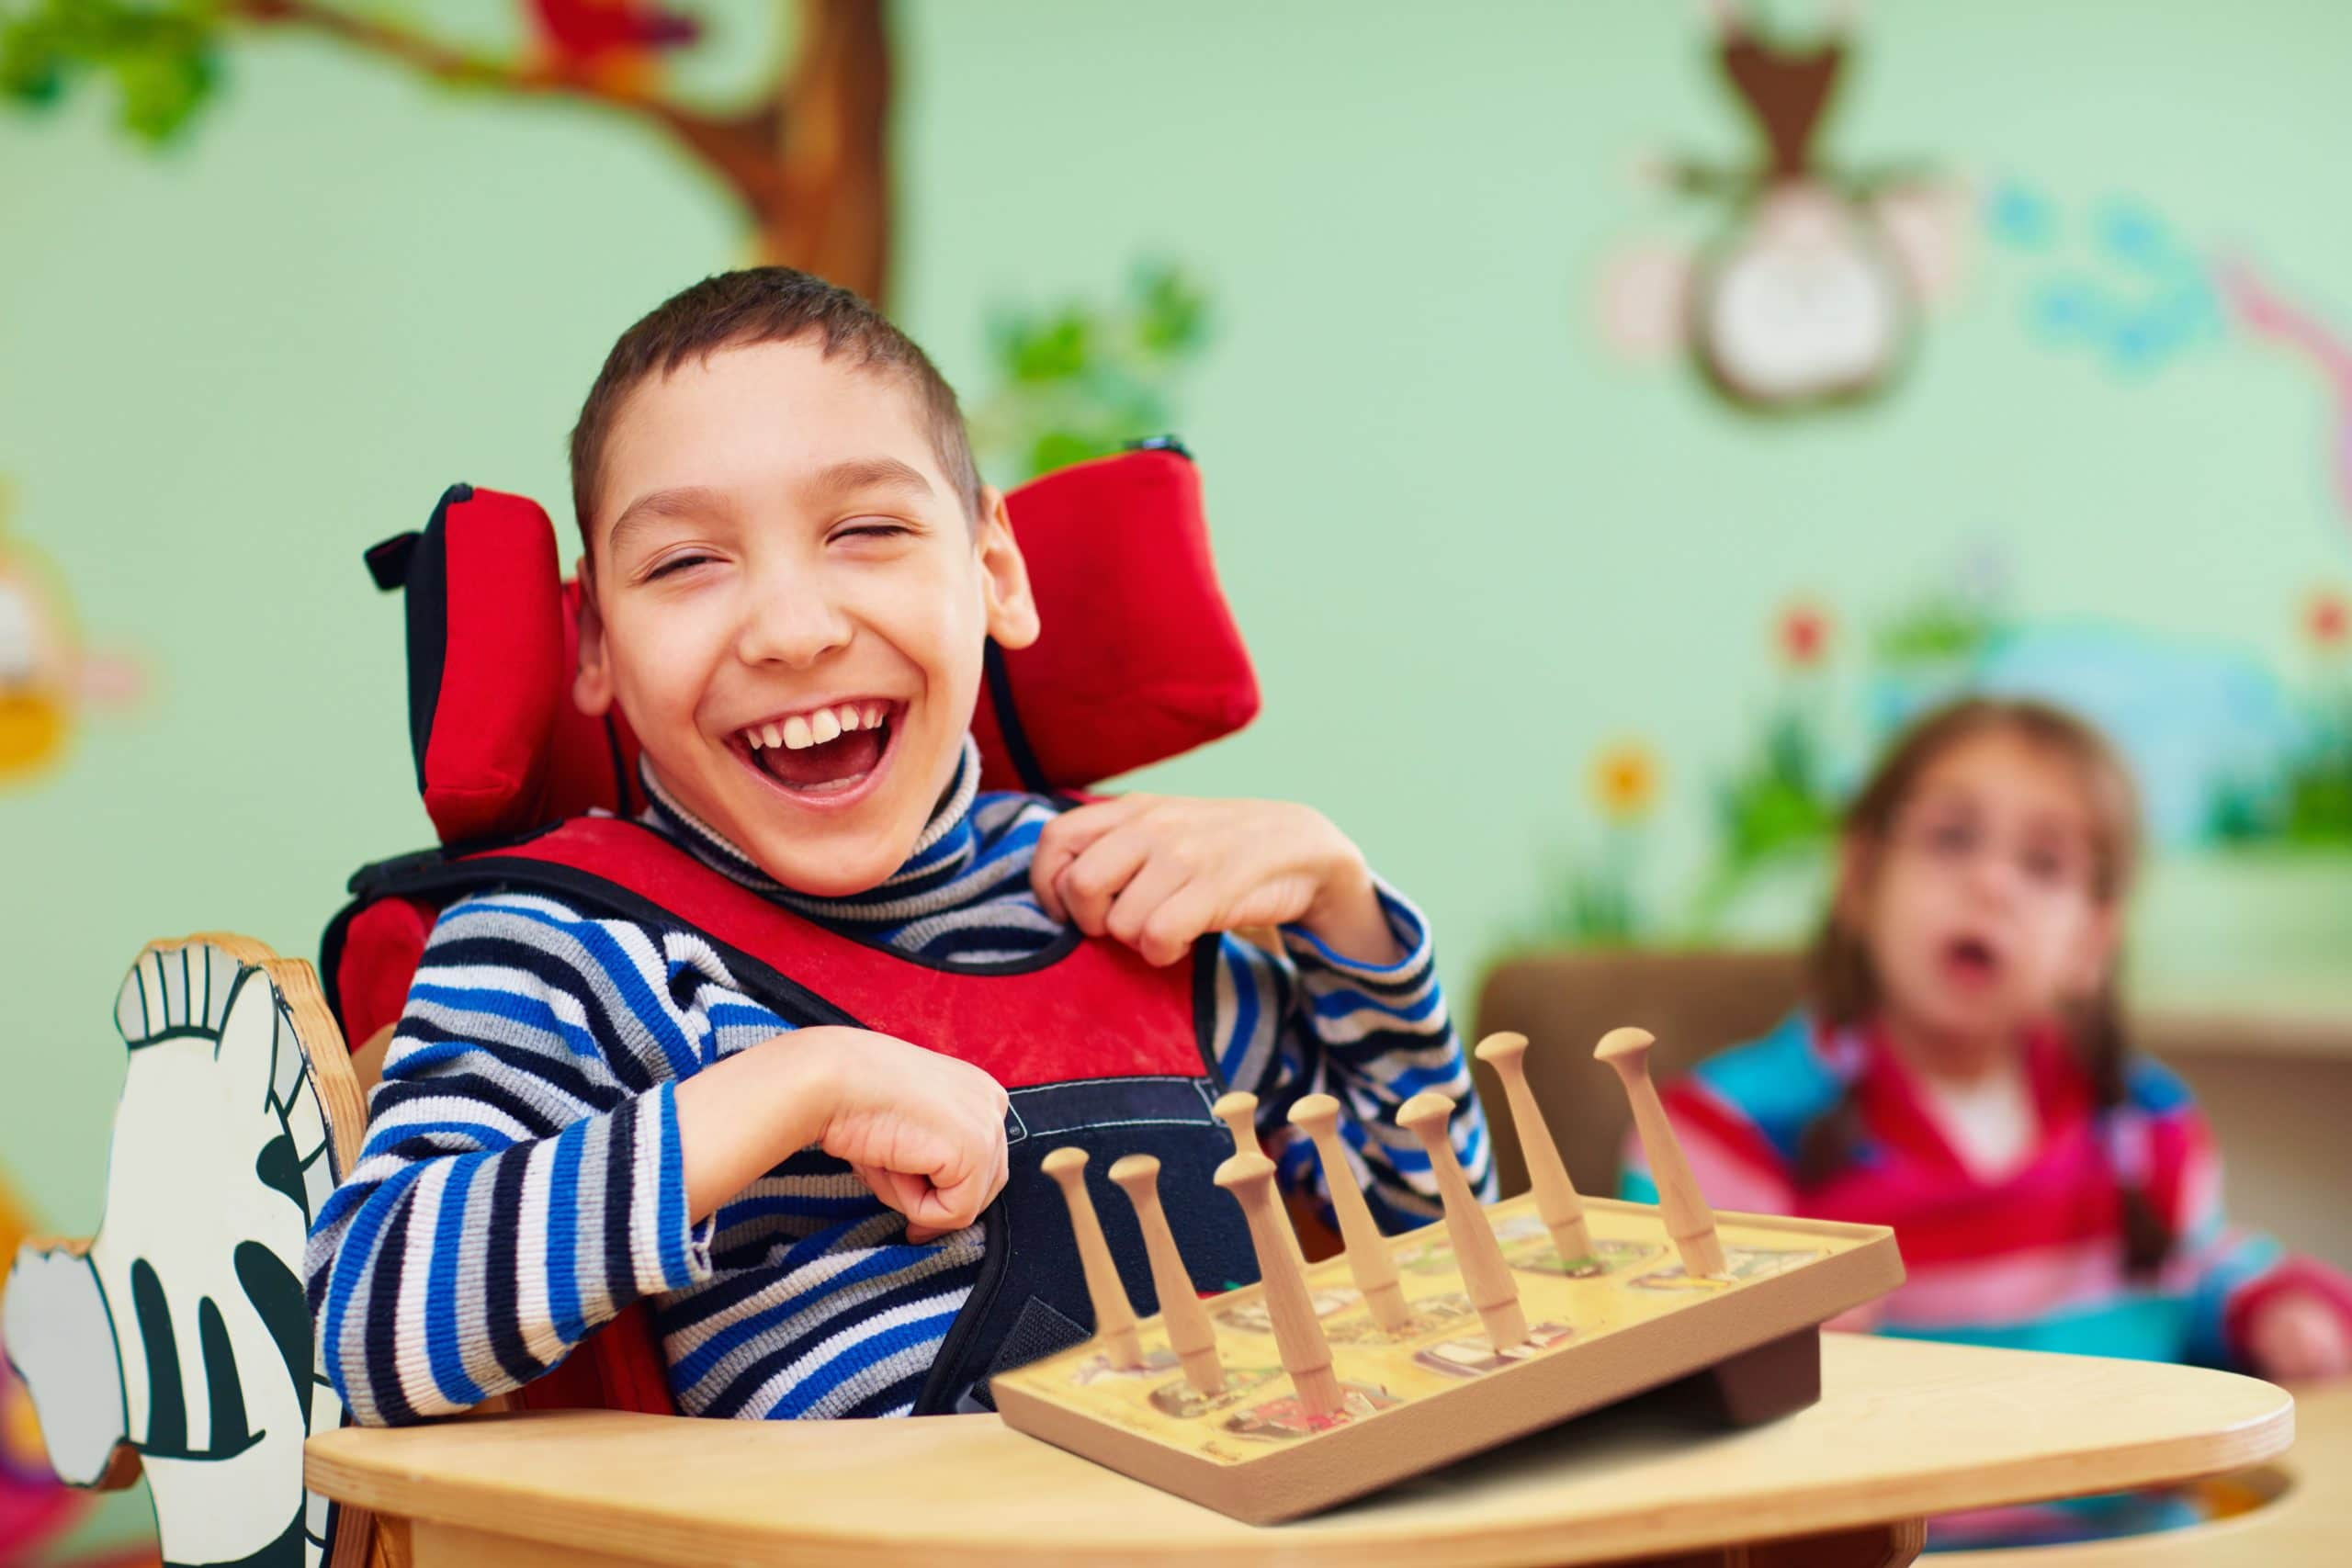 Young Boy with Cerebral Palsy Playing with a Puzzle